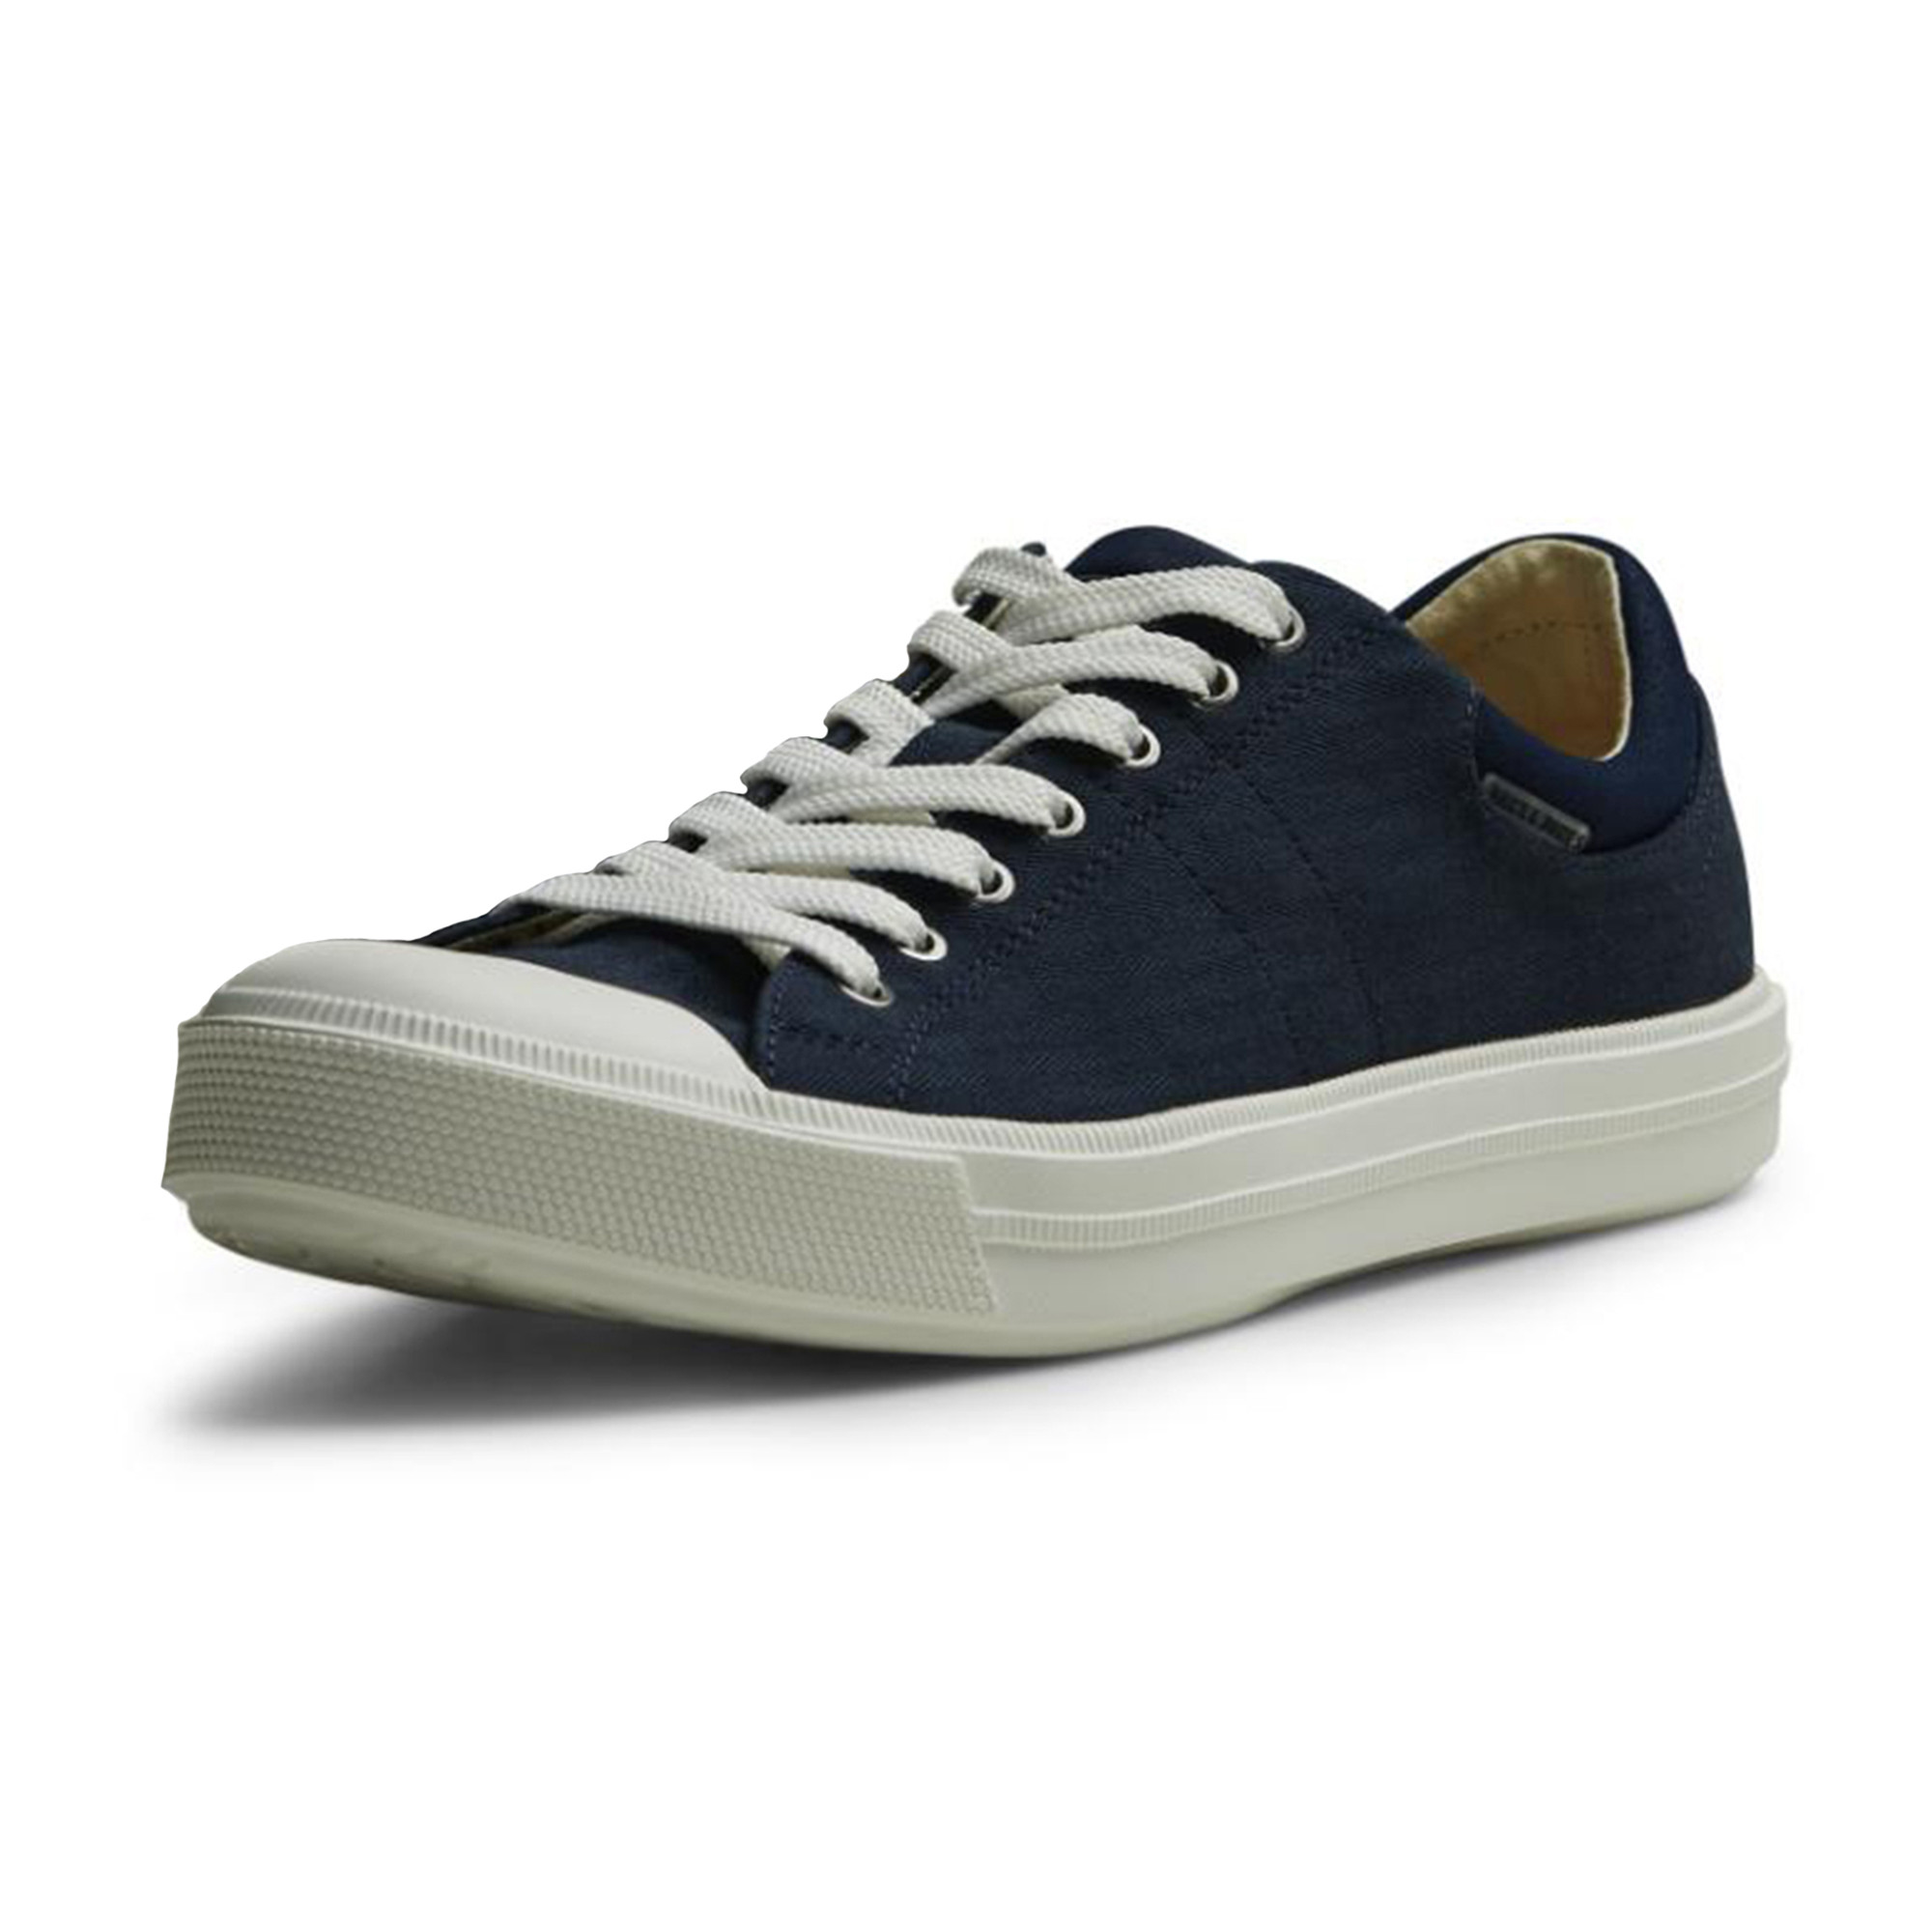 discount 2014 unisex clearance latest collections Jack & Jones Canvas Trainer enjoy for sale cheap sale outlet locations cheap shopping online iI8QOH34tJ